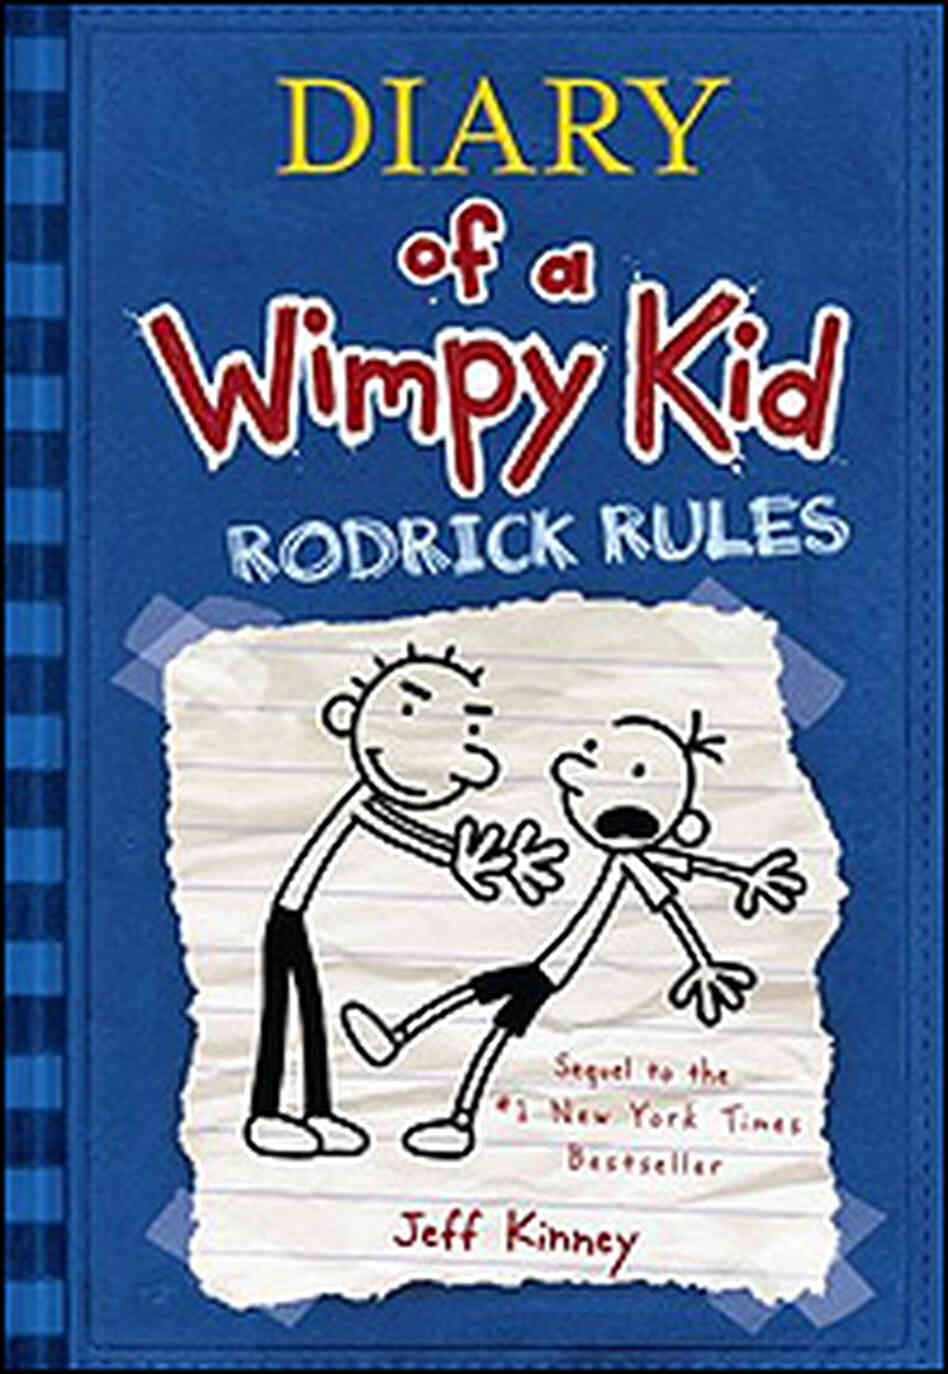 'Diary of a Wimpy Kid: Rodrick Rules' Book Cover